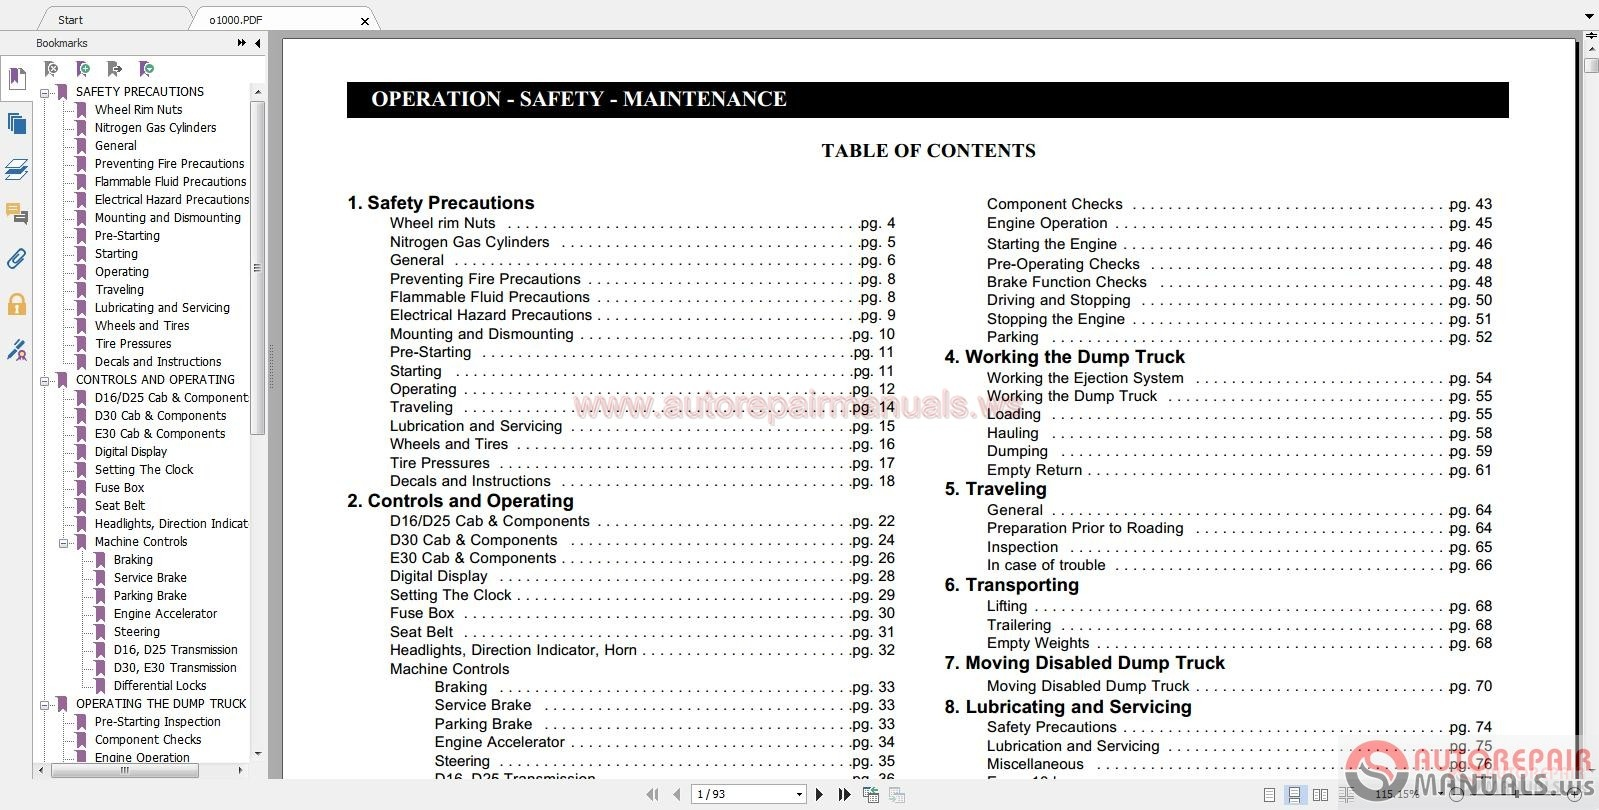 Auto Repair Manuals Linkbelt Full Shop Manual Part